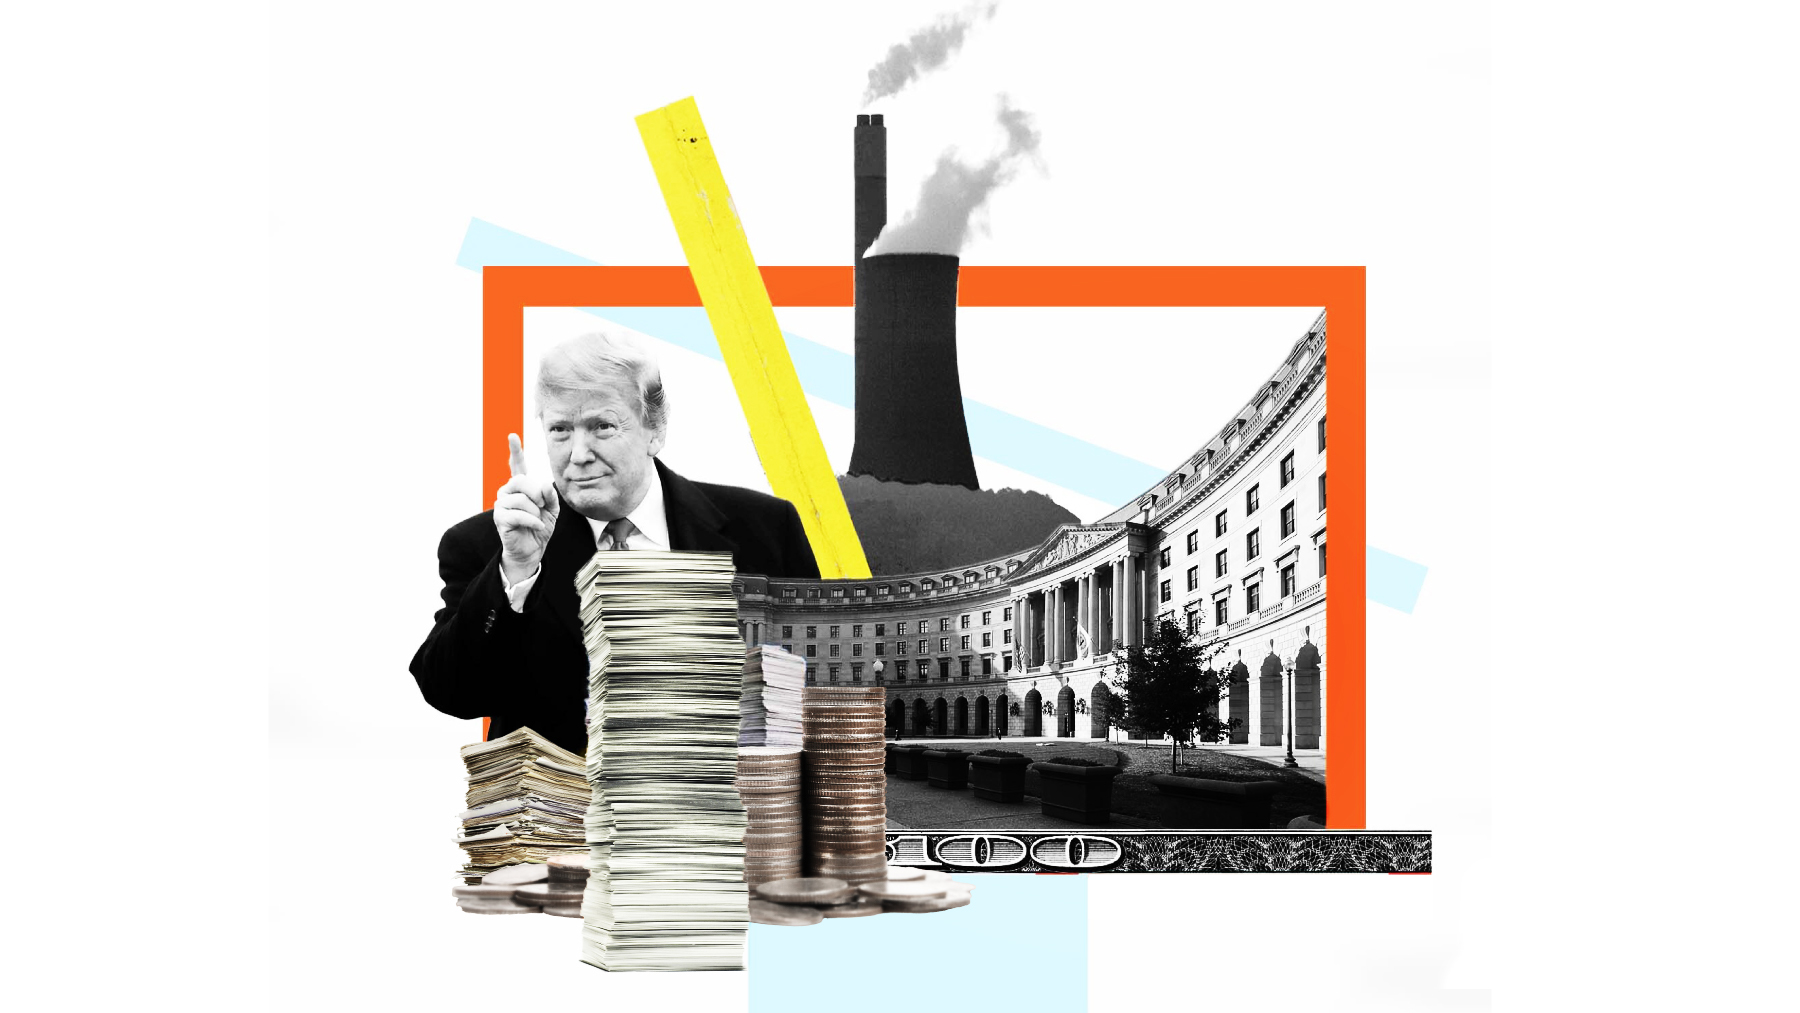 An illustration of Trump, smokestacks, and paperwork.